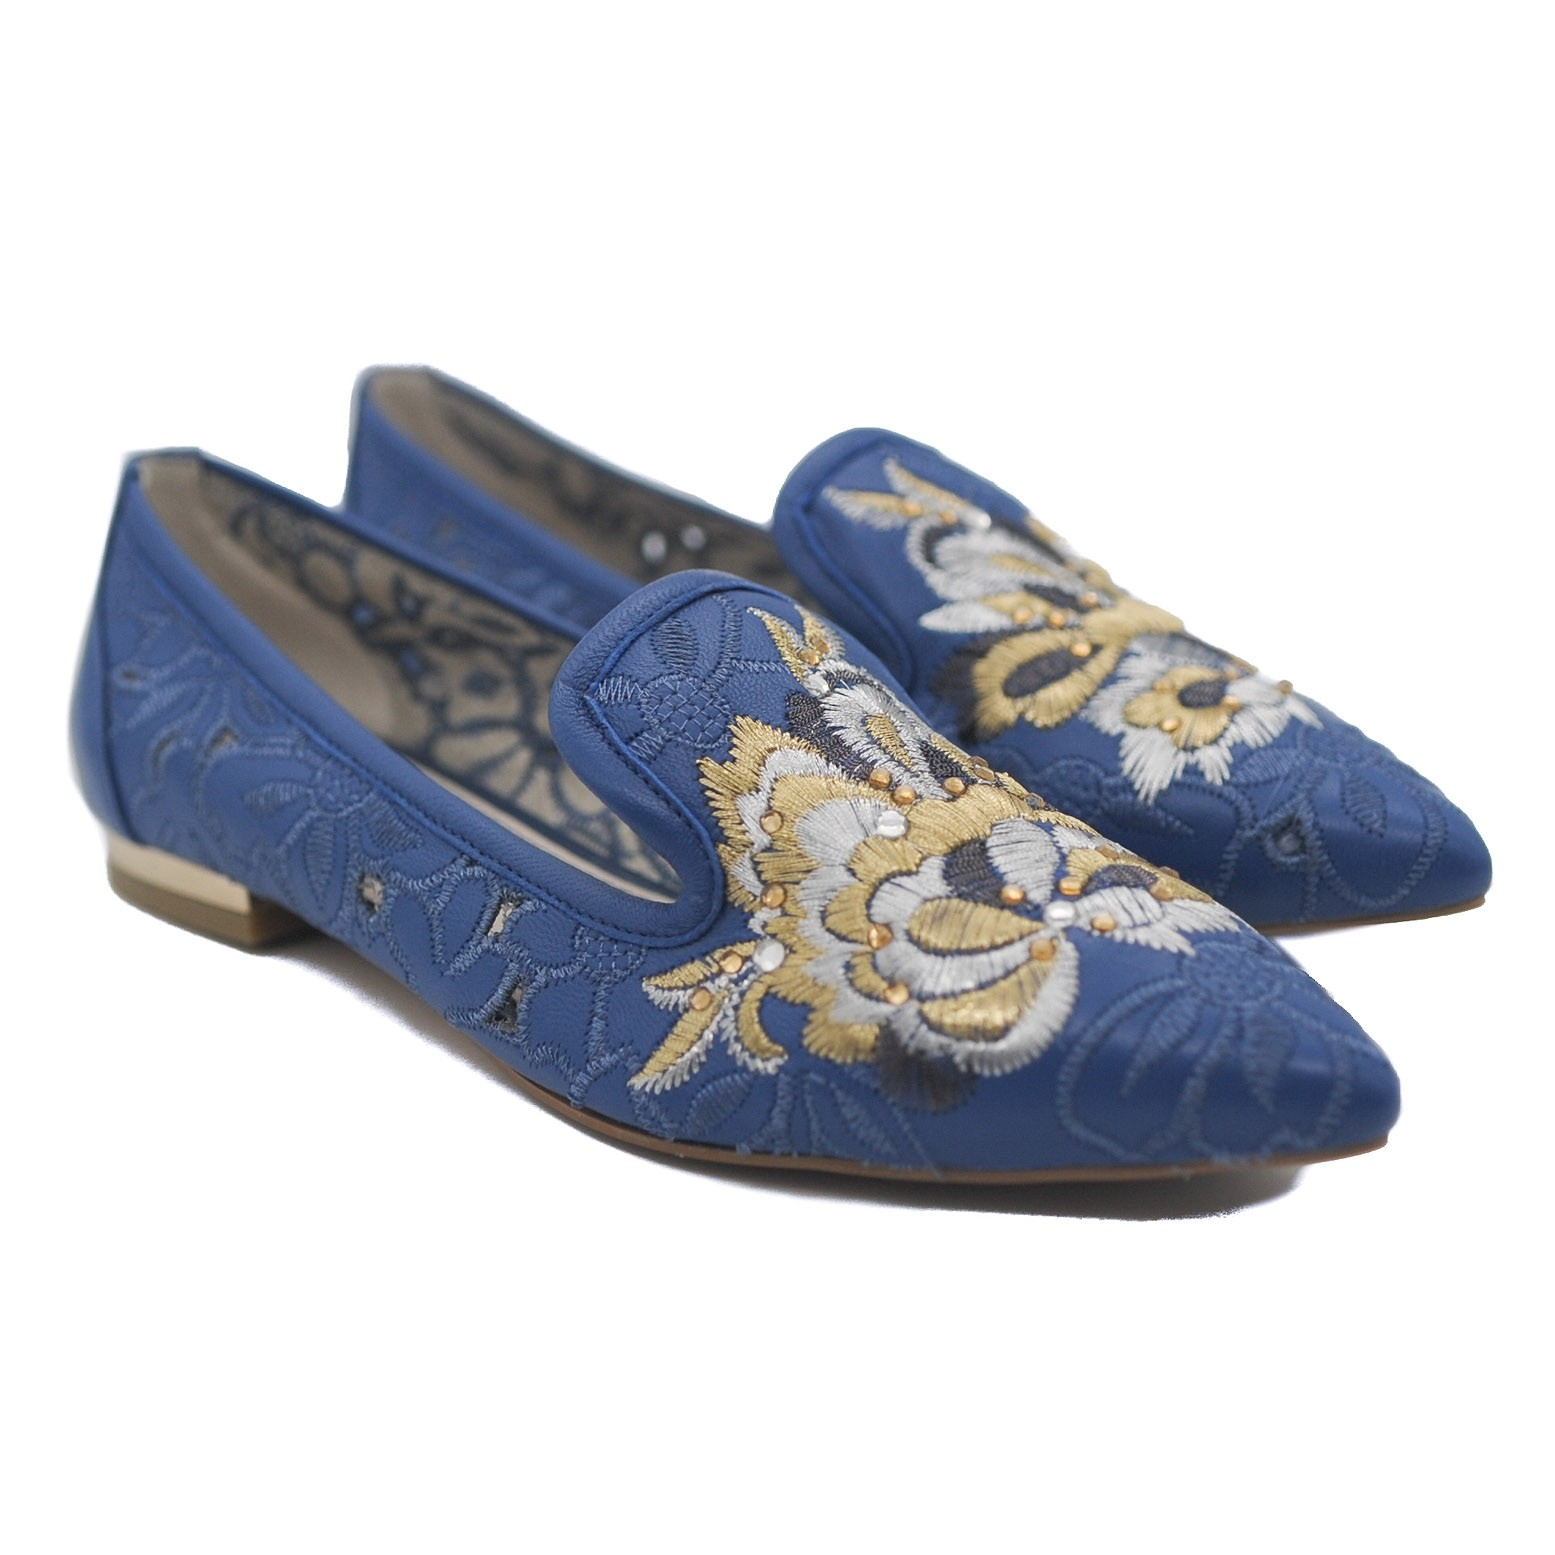 Goody2Shoes Blue Leather Flat Pumps with Cut Out Design and Embroidered Front